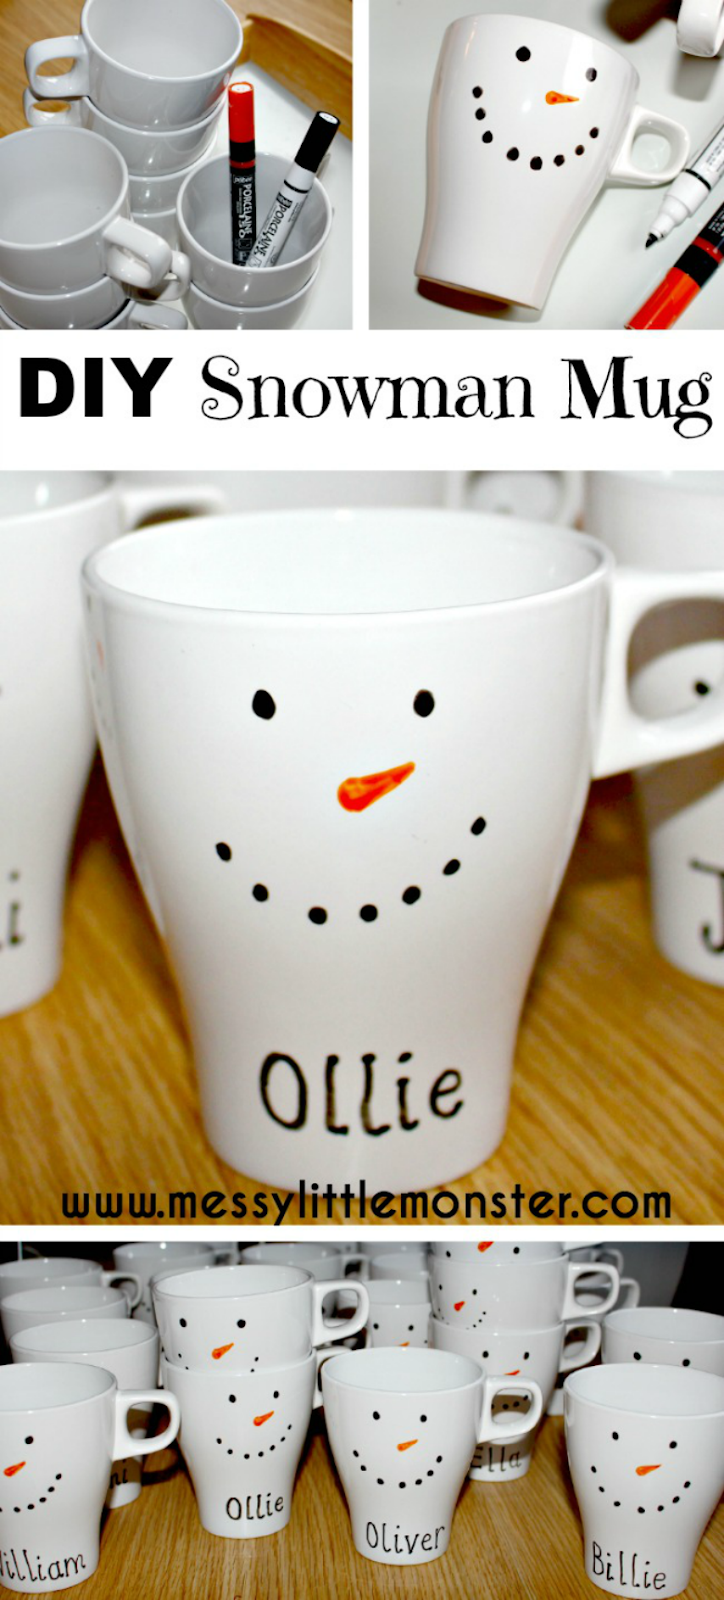 Make your own diy snowman mug. Easy snowman craft for kids.